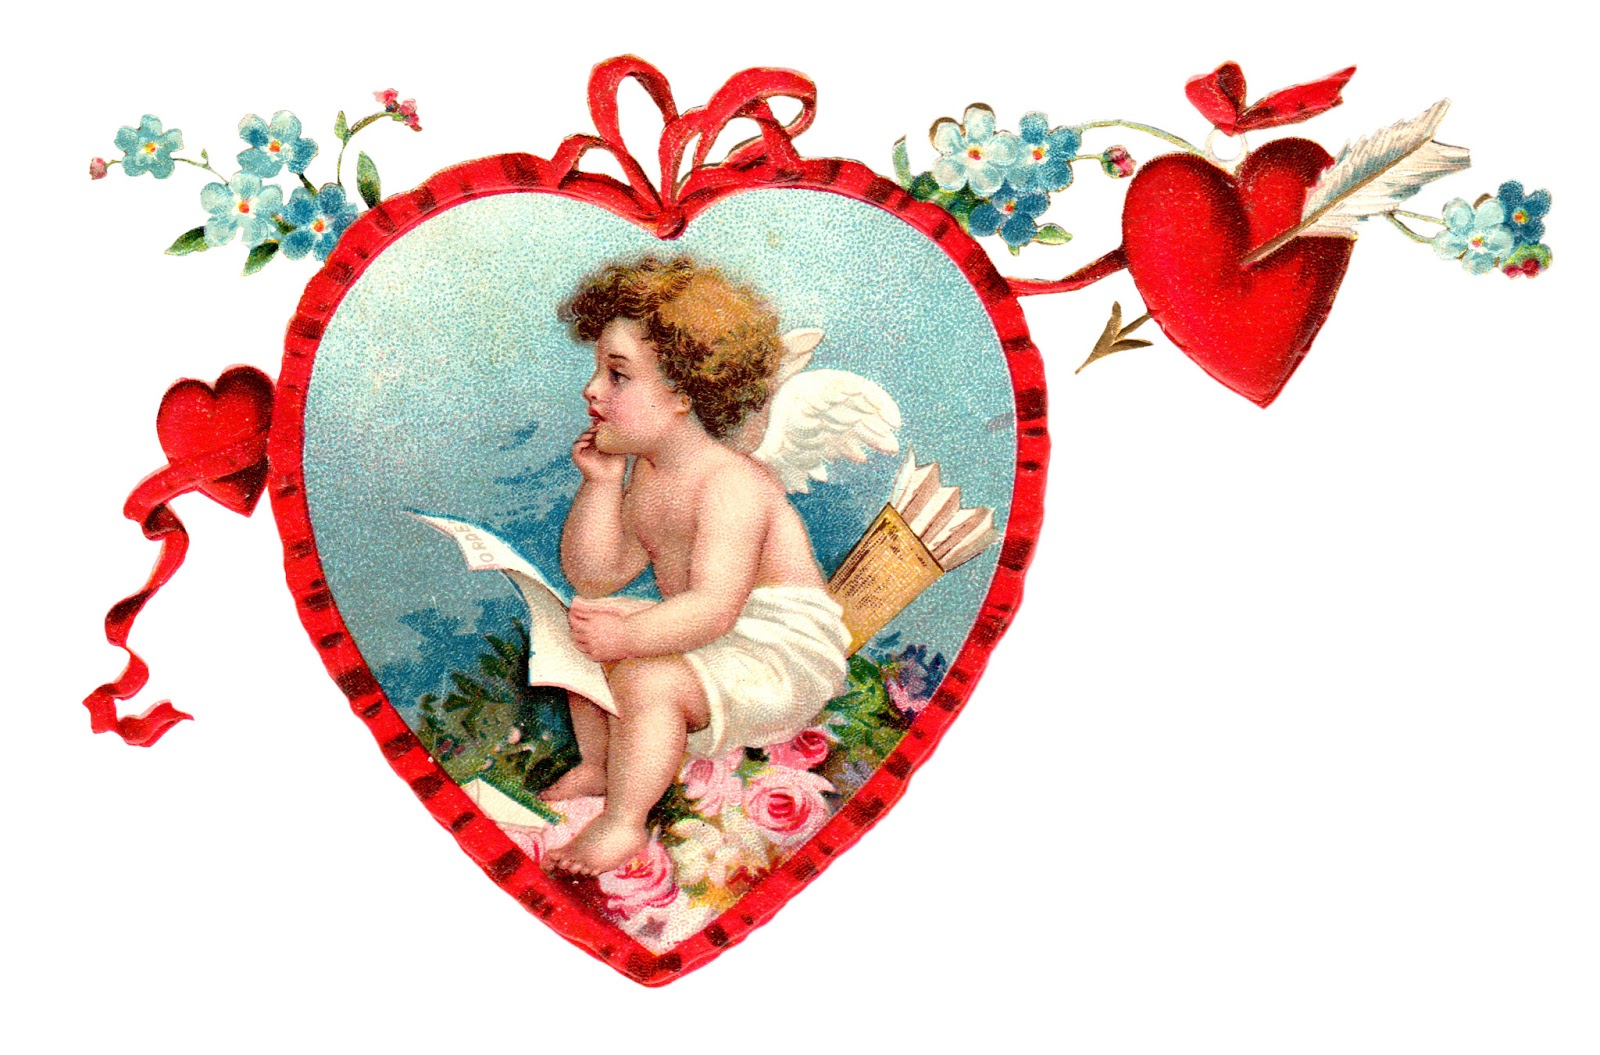 http://thegraphicsfairy.com/wp-content/uploads/2013/01/Vintage+Valentine+20131.jpg